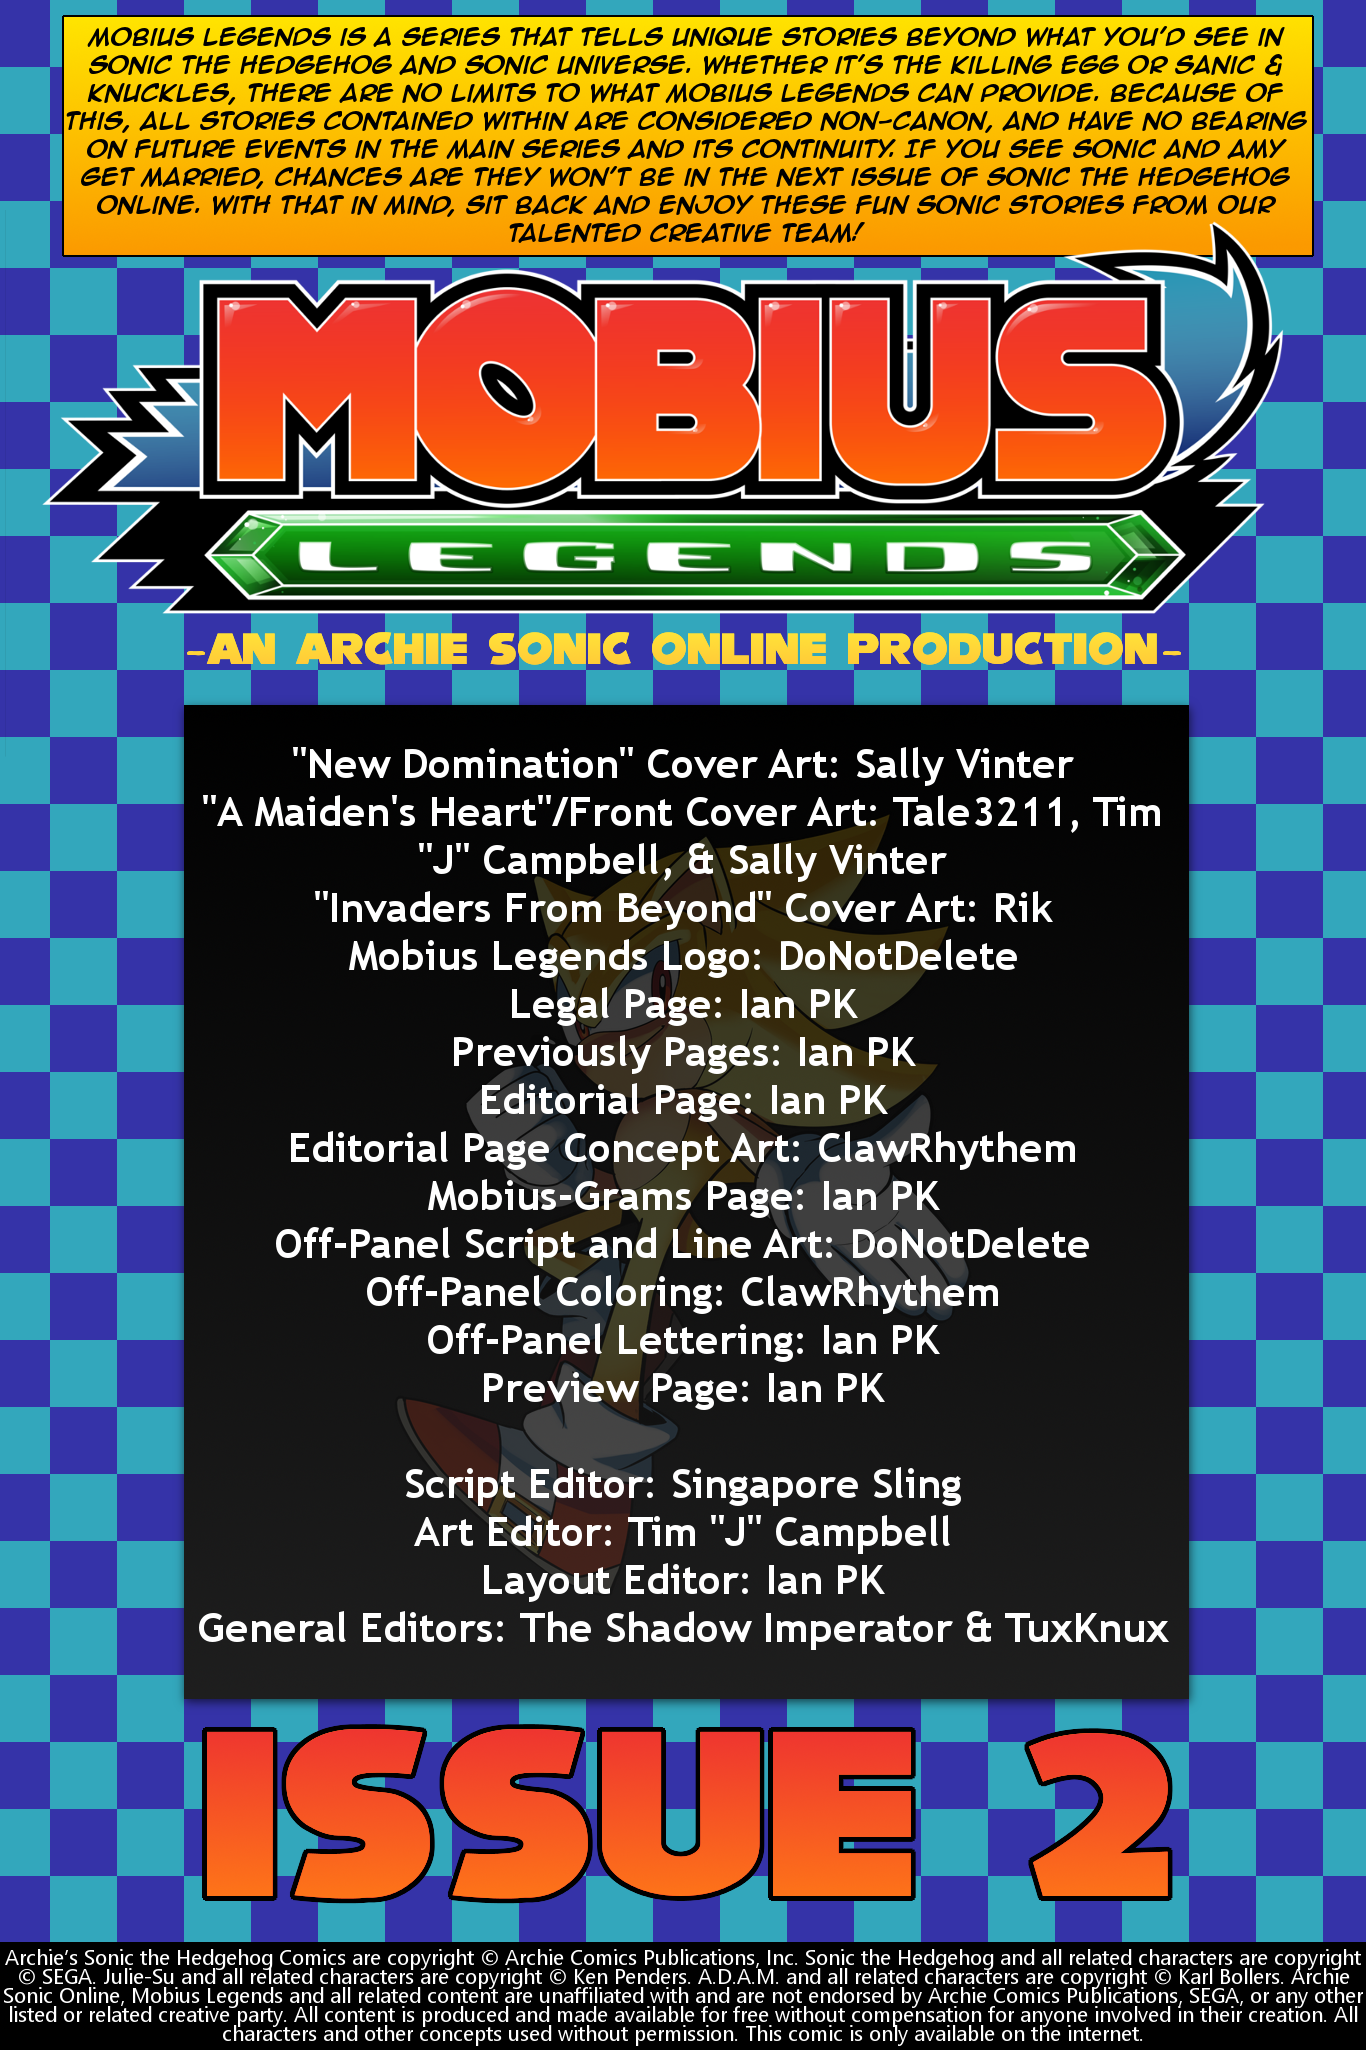 Mobius Legends #2 – Table of Contents